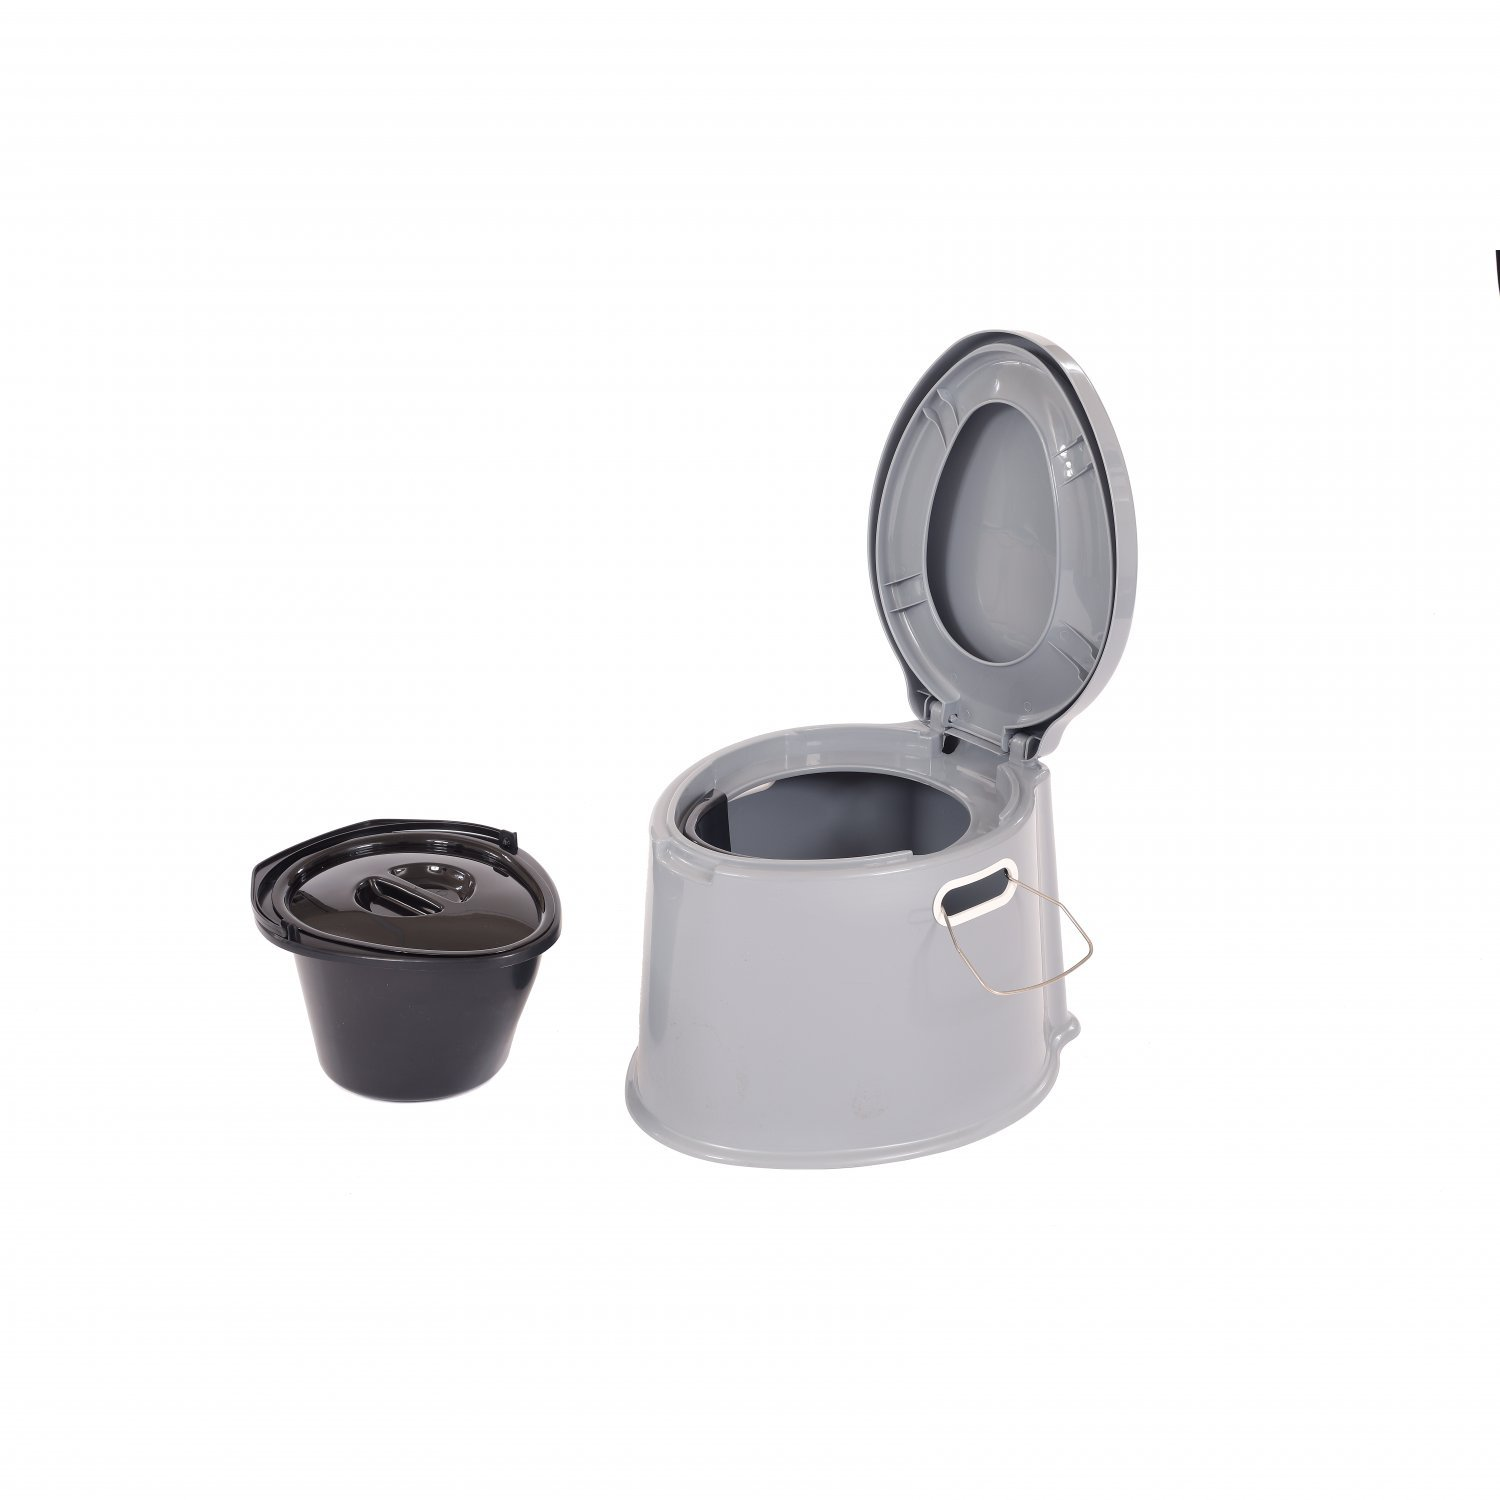 Camping Toilet 5l Portable Compact Camping Toilet Potty With Removable Bucket